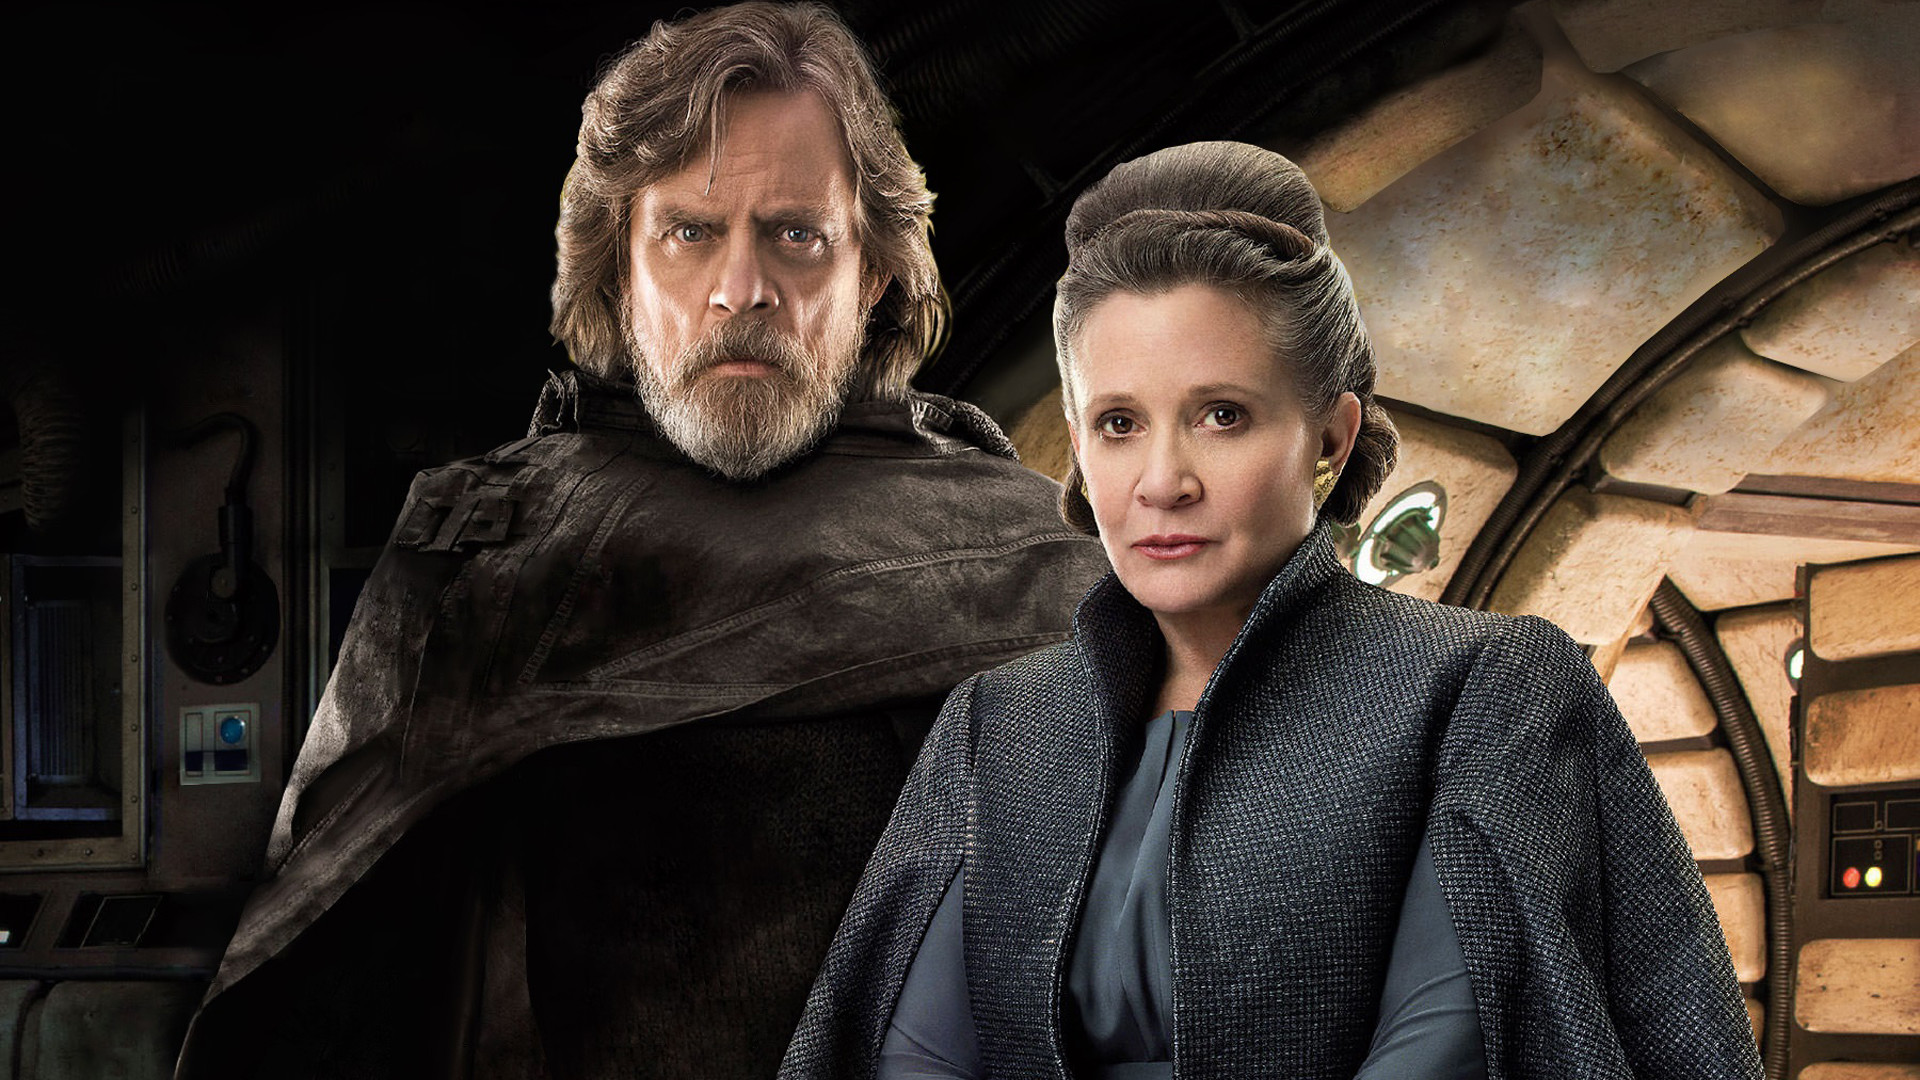 Carrie Fisher The Last Jedi , HD Wallpaper & Backgrounds